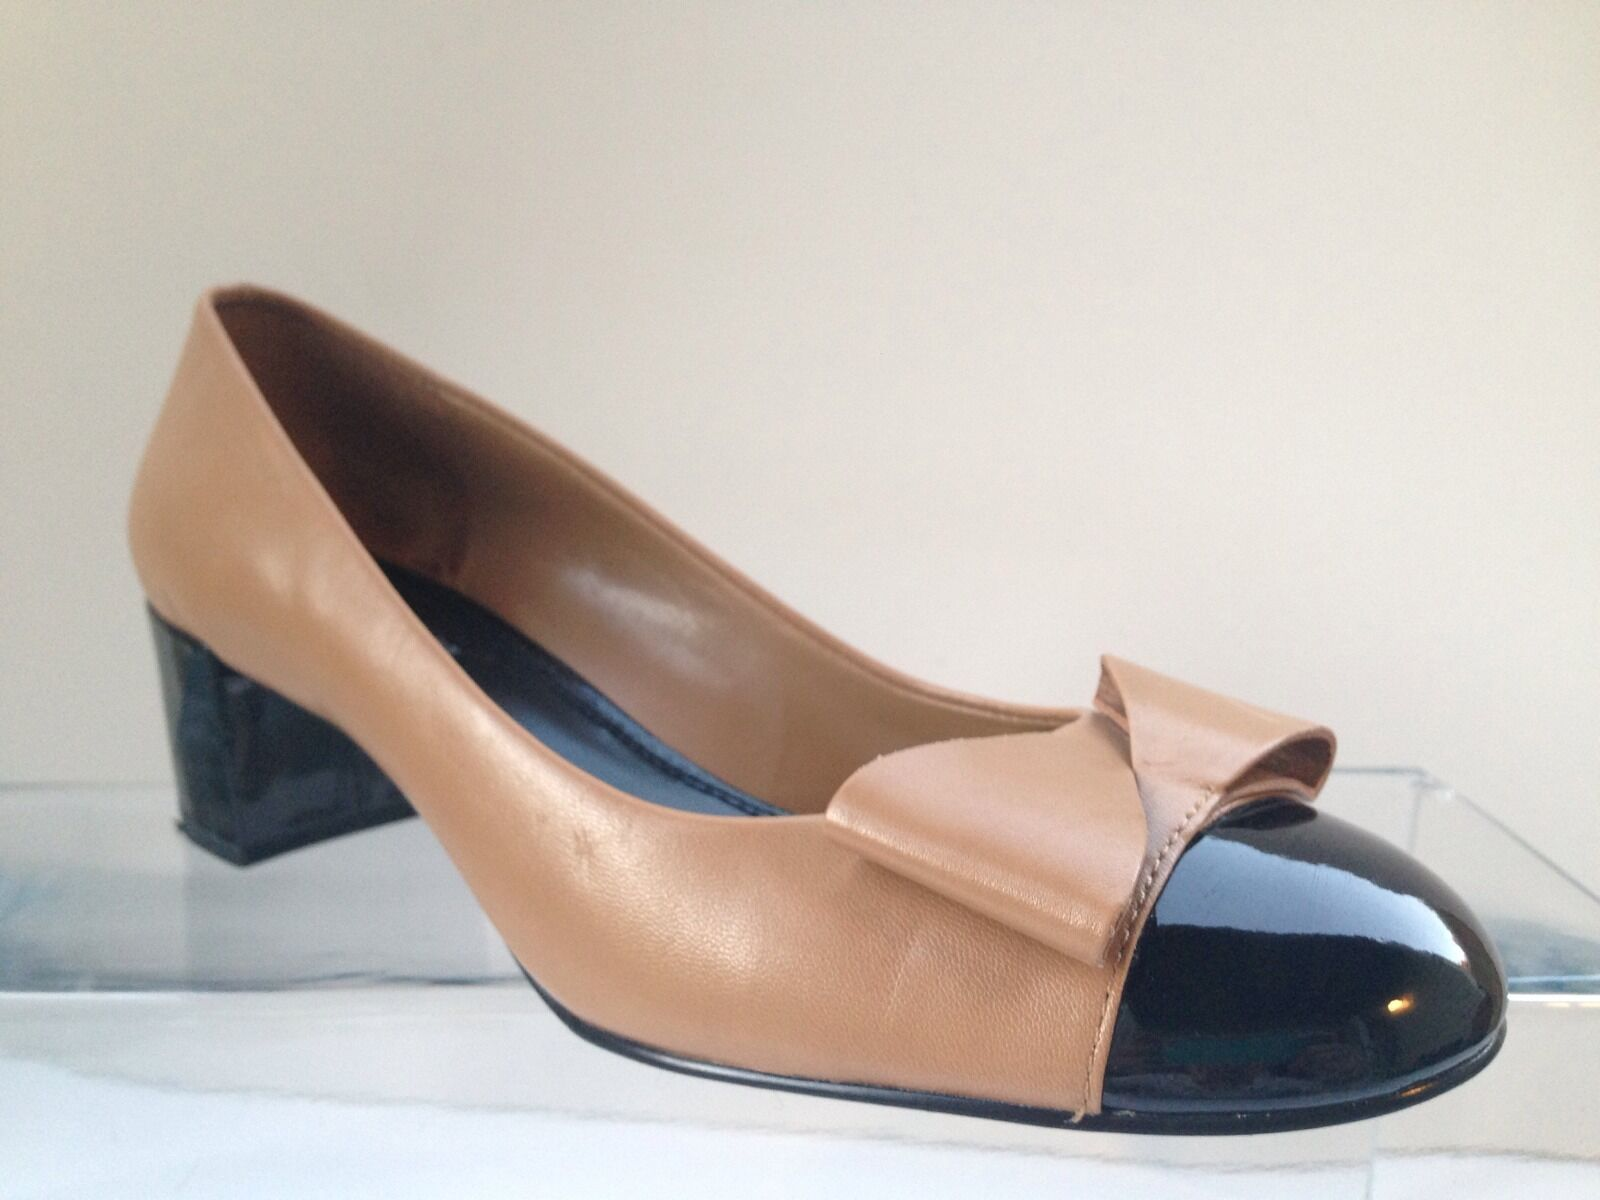 Stylish Franco Sarto  Classic  Patent Leather And Leather Low Heels. Size 9 M.